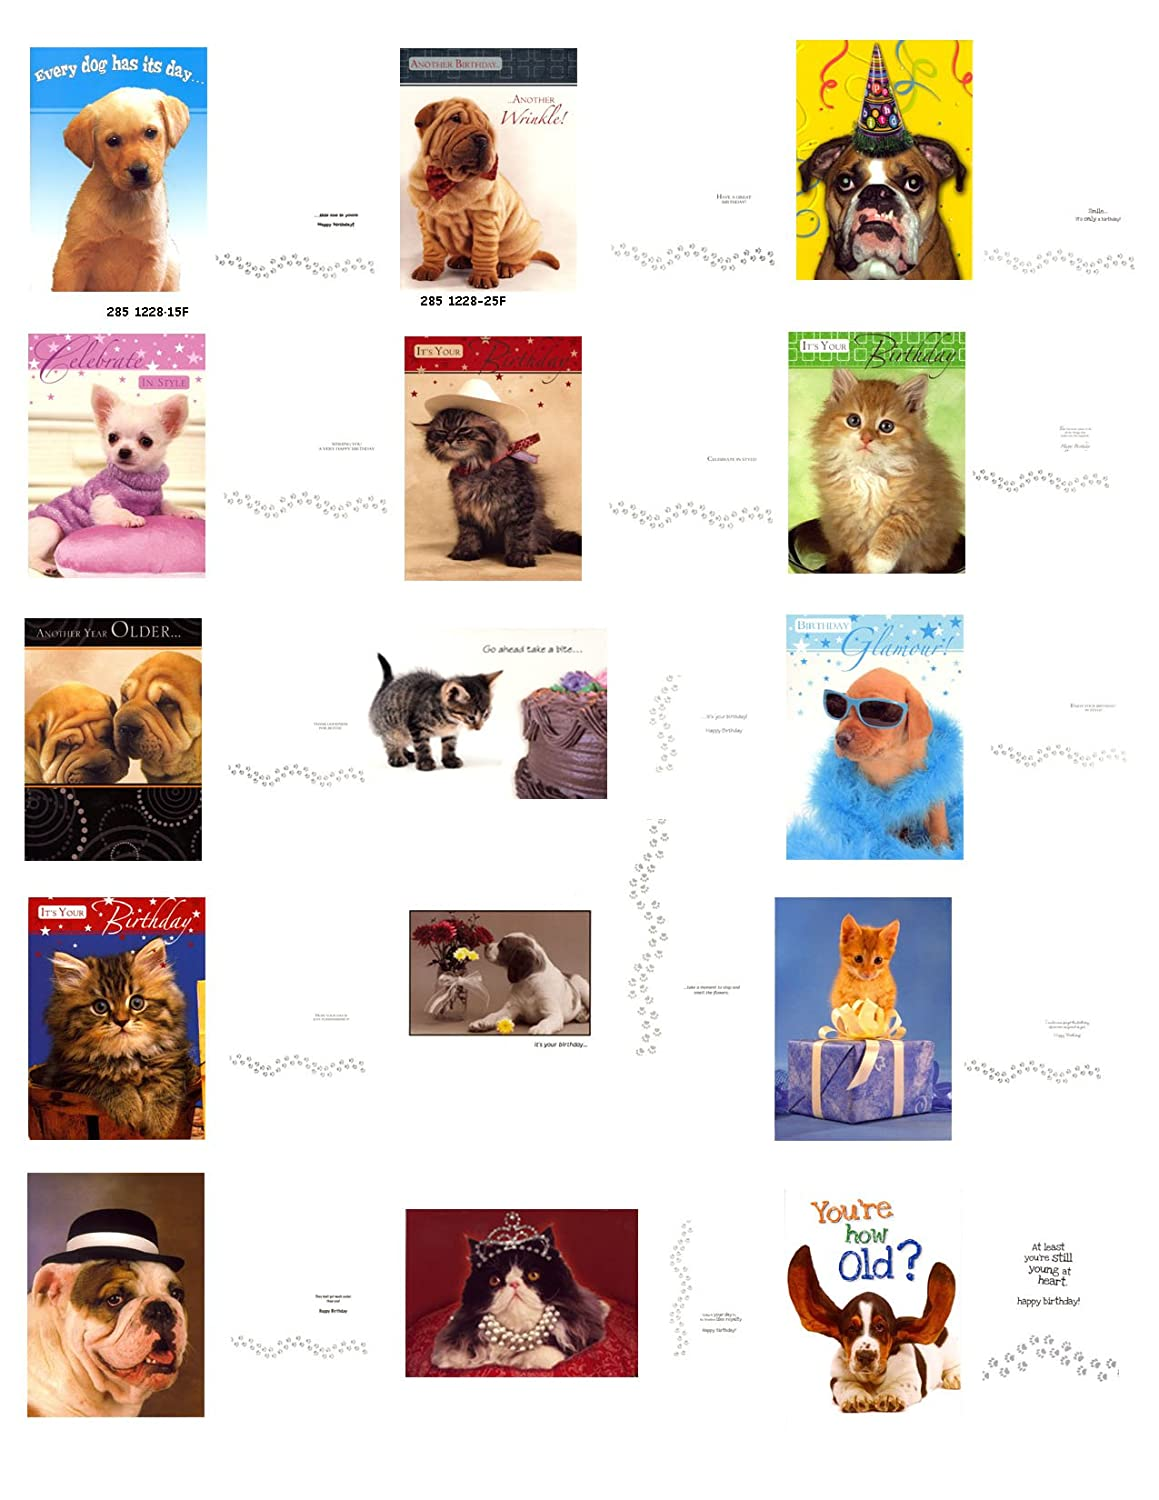 BULK SAVINGS ON 30 HUMOROUS BIRTHDAY CARDS WITH DOG AND CAT THEMES GREAT FOR MOMDADSISTERBROTHERAUNTUNCLECHILDREN COUSINGRANDCHILDRENGRANDMA